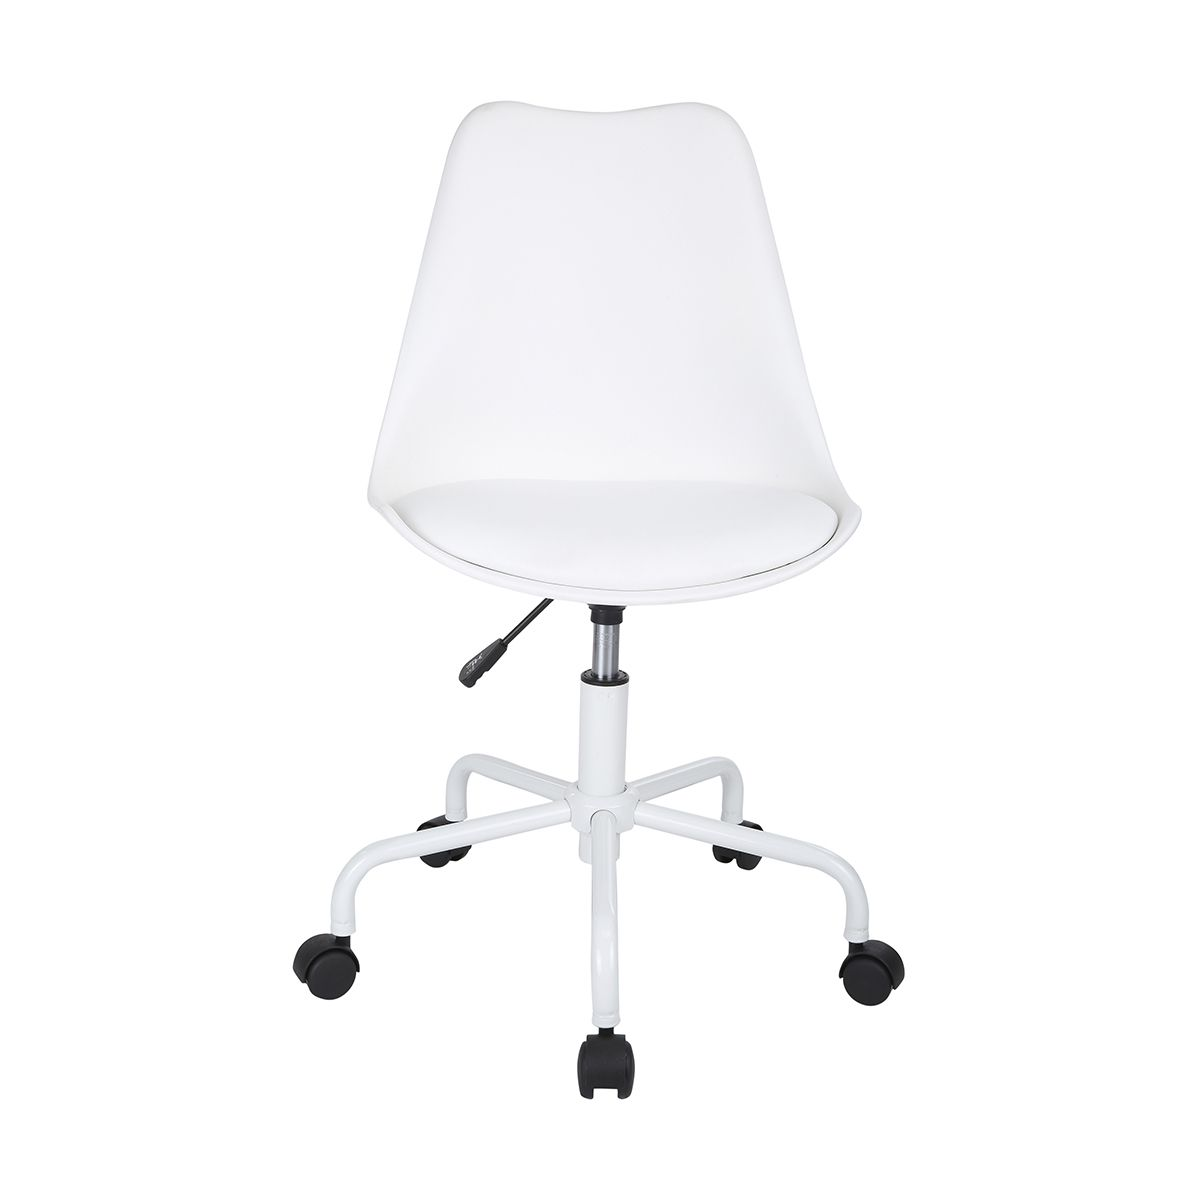 Montreal Office Chair White Office Chair White Office Chair Stylish Office Chairs